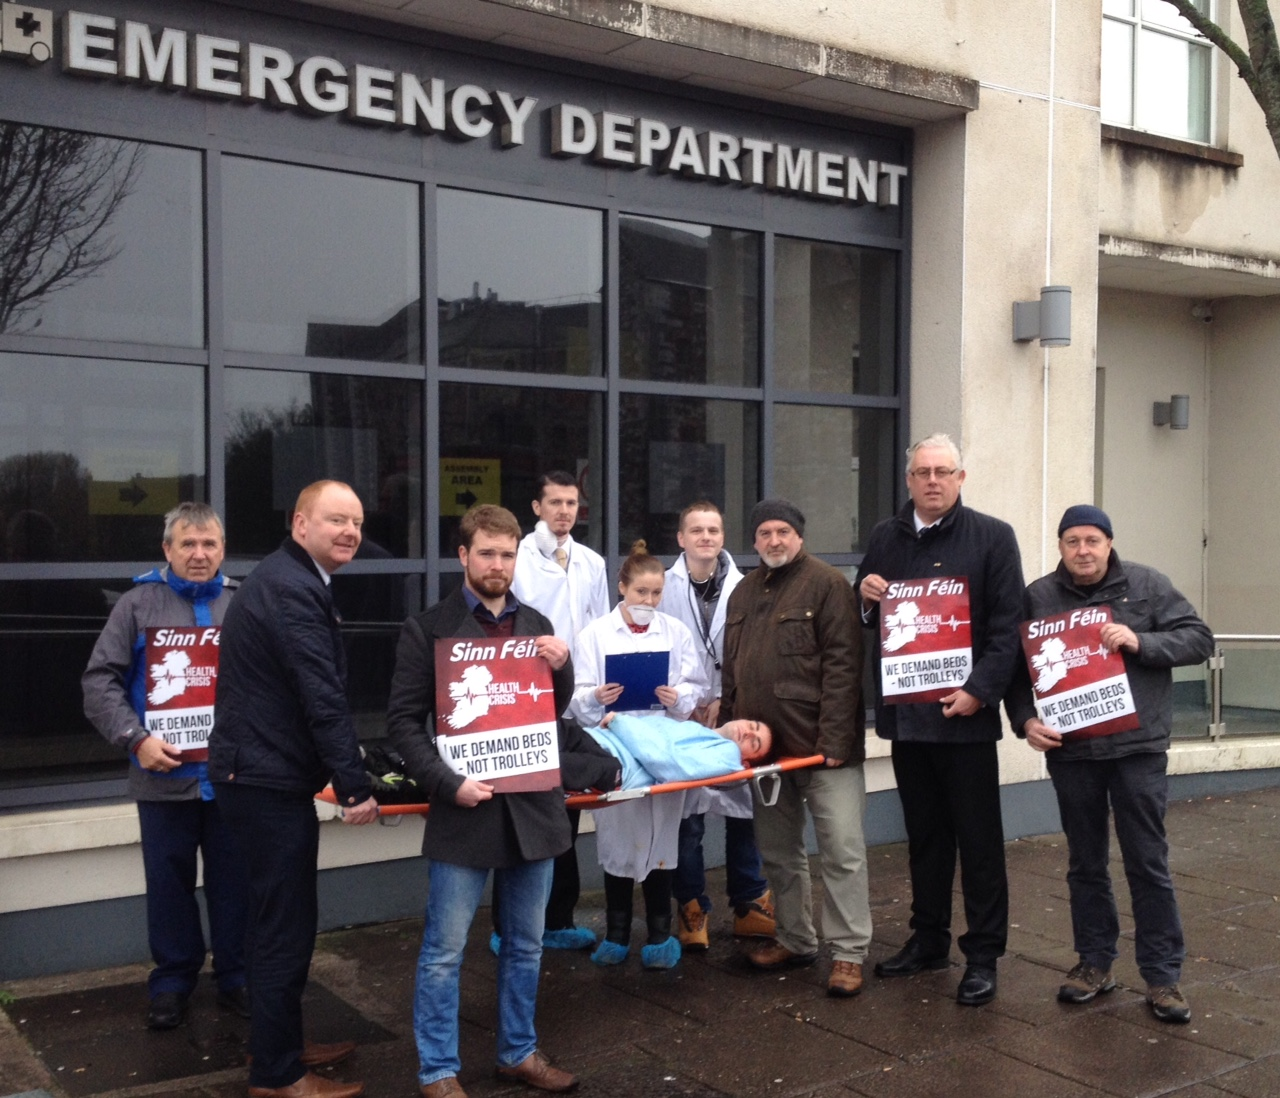 Protest outside Cork City Centre Emergency Department to highlight overcrowding